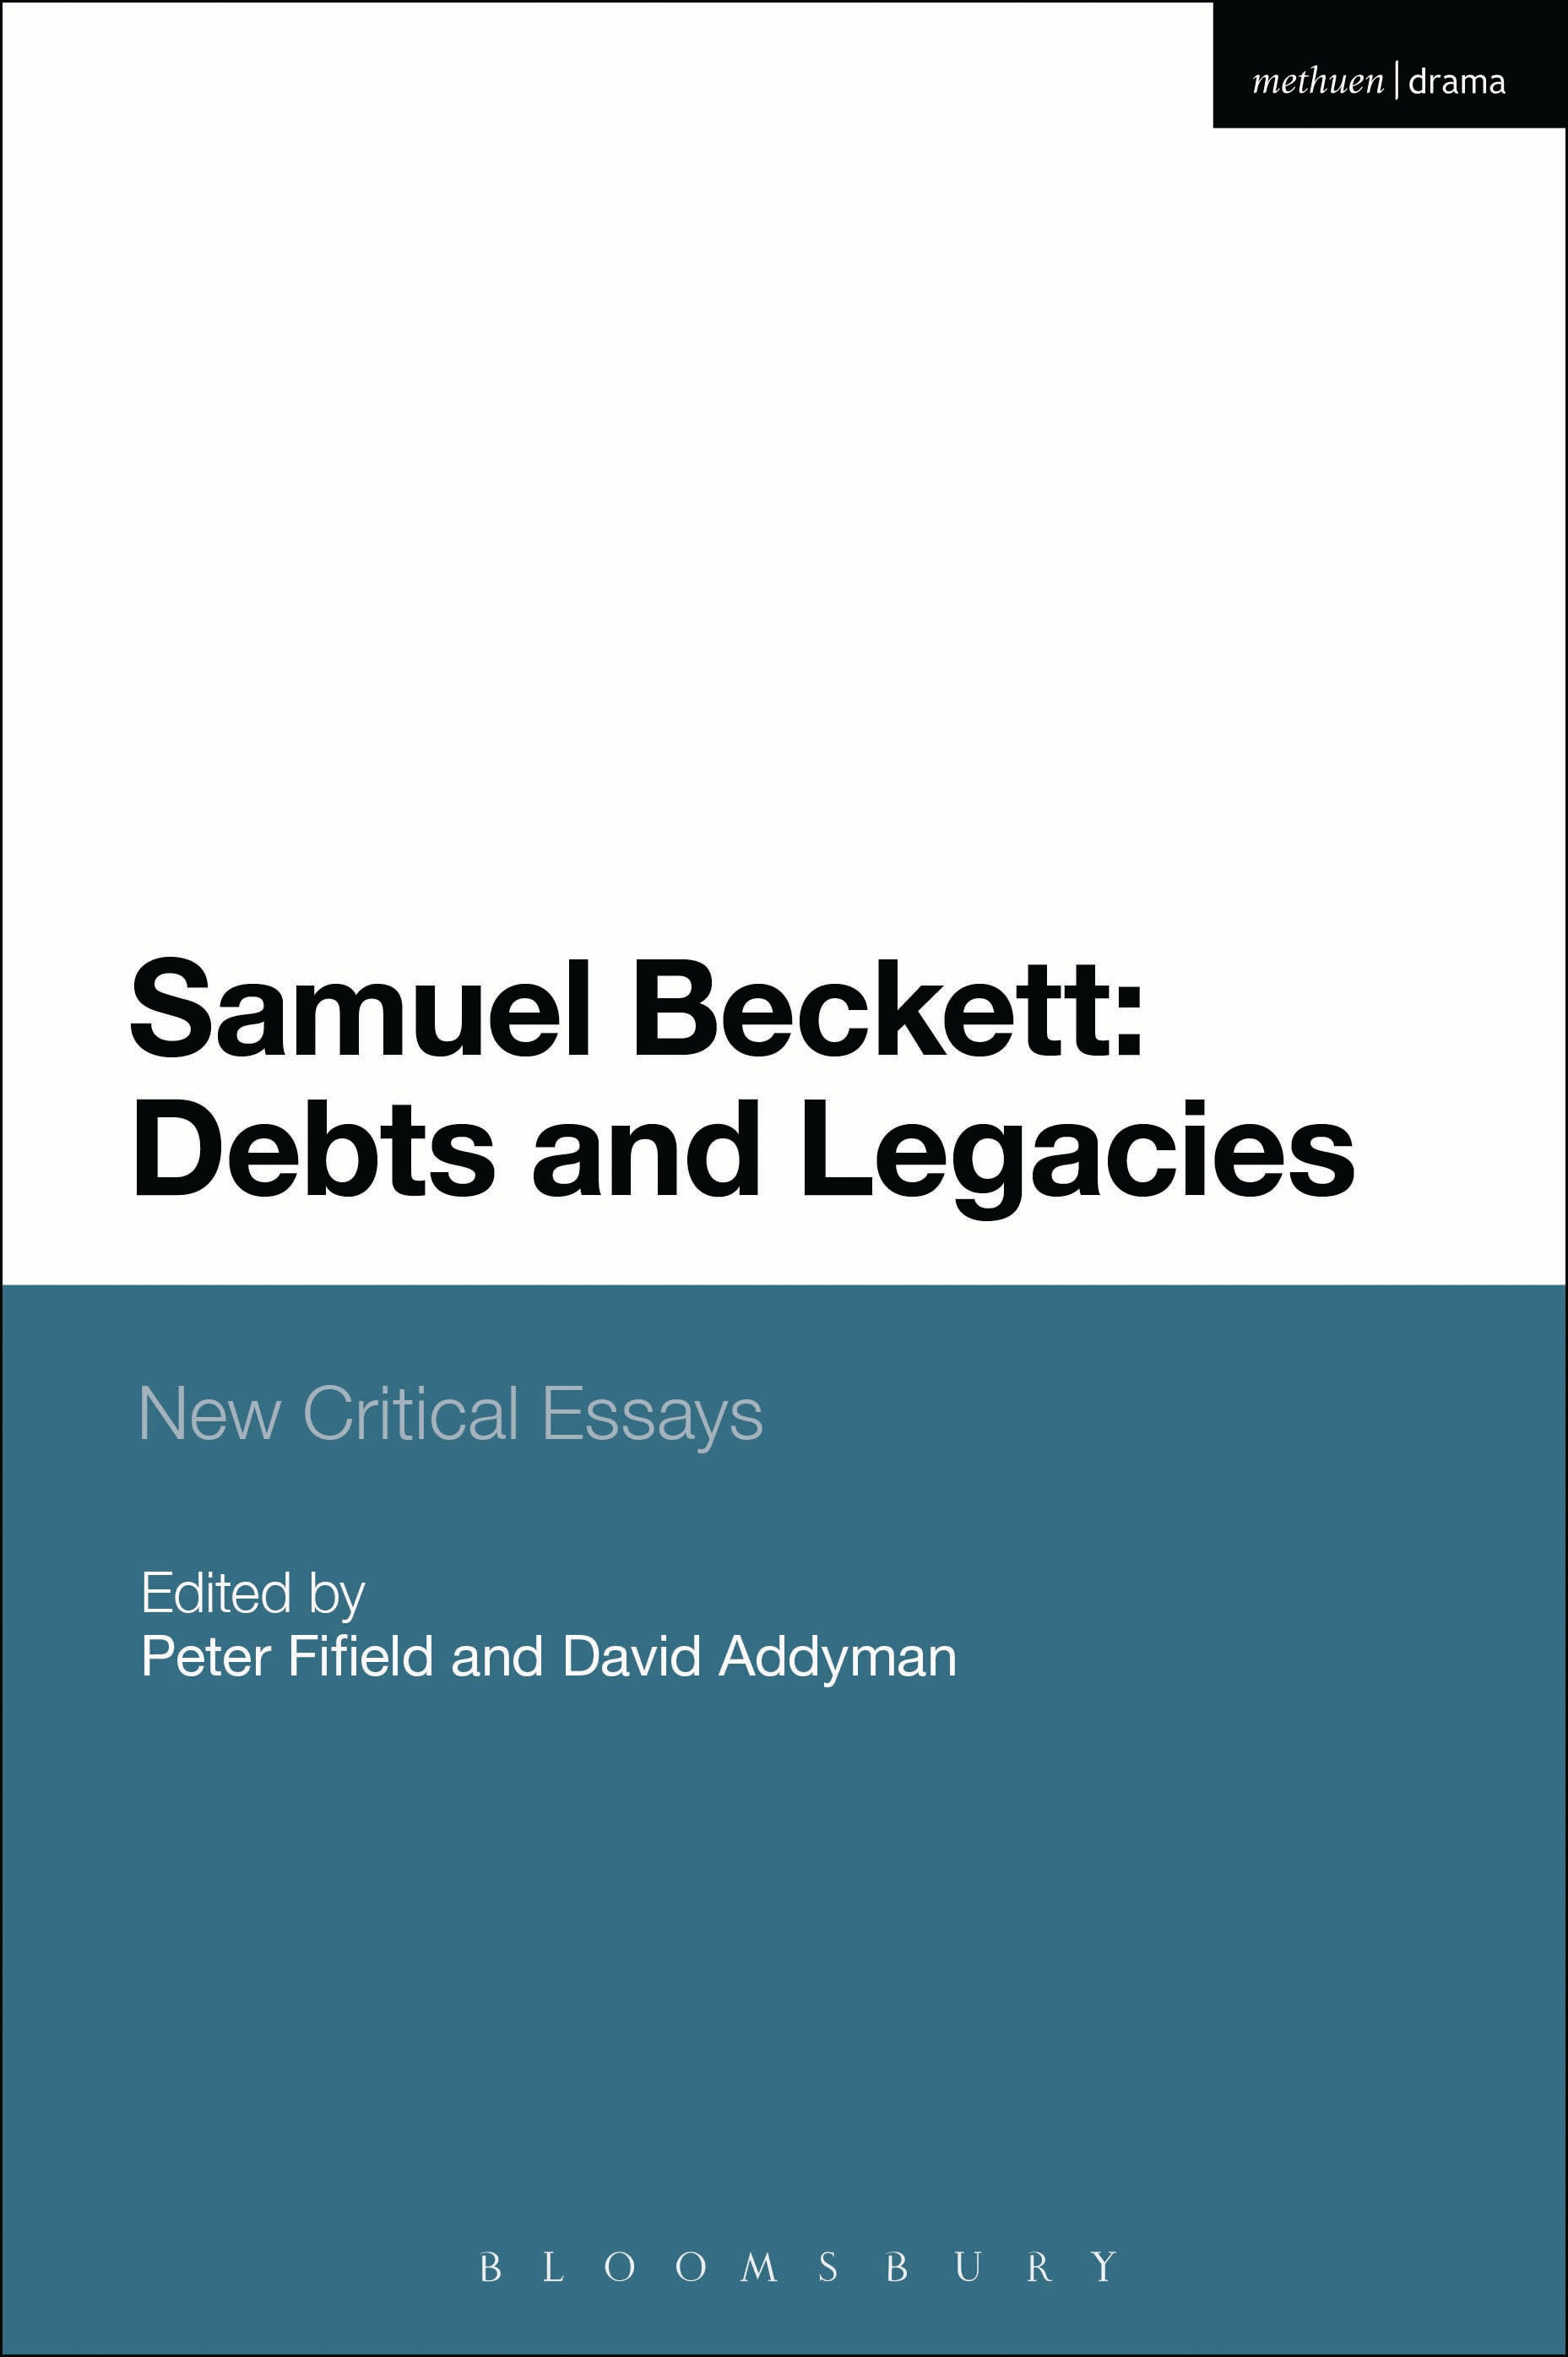 Samuel Beckett: Debts and Legacies